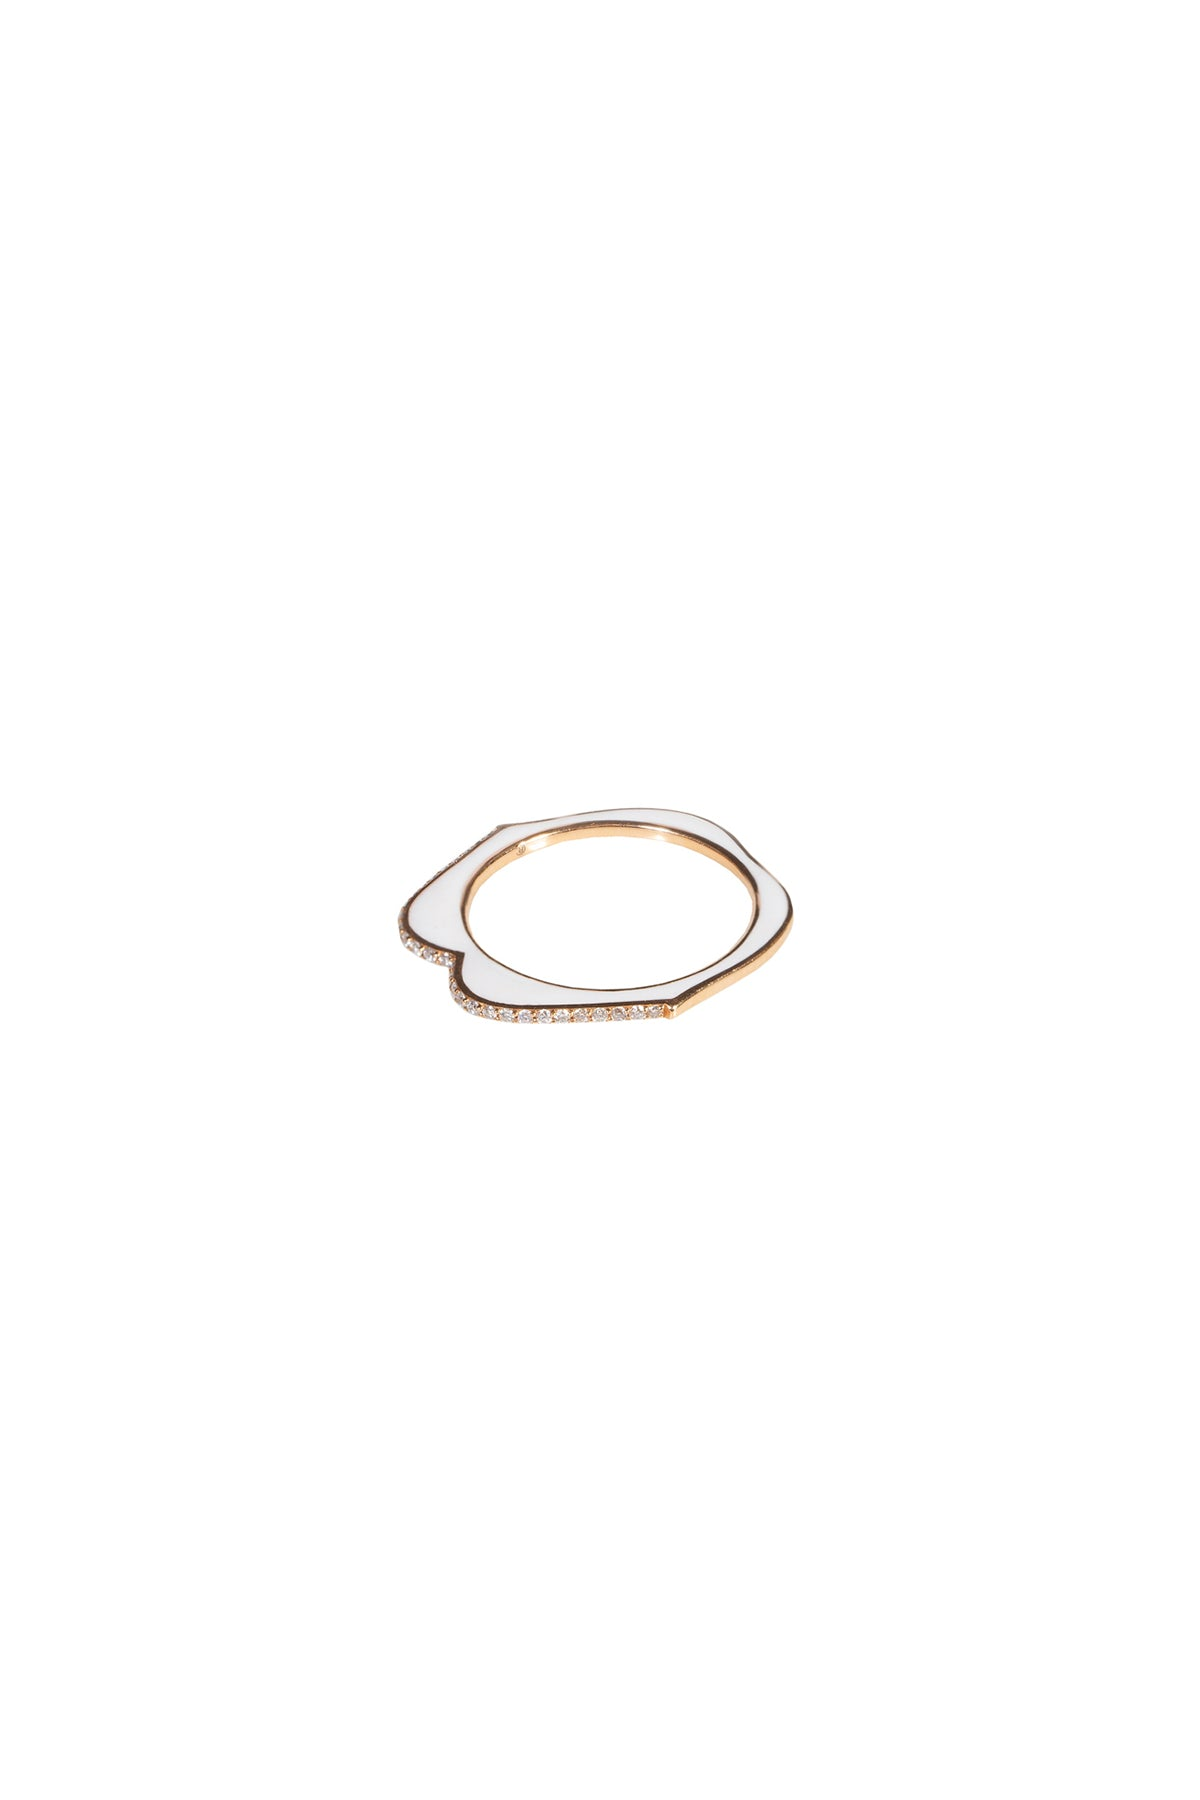 OMG Enamel Lip Ring - White